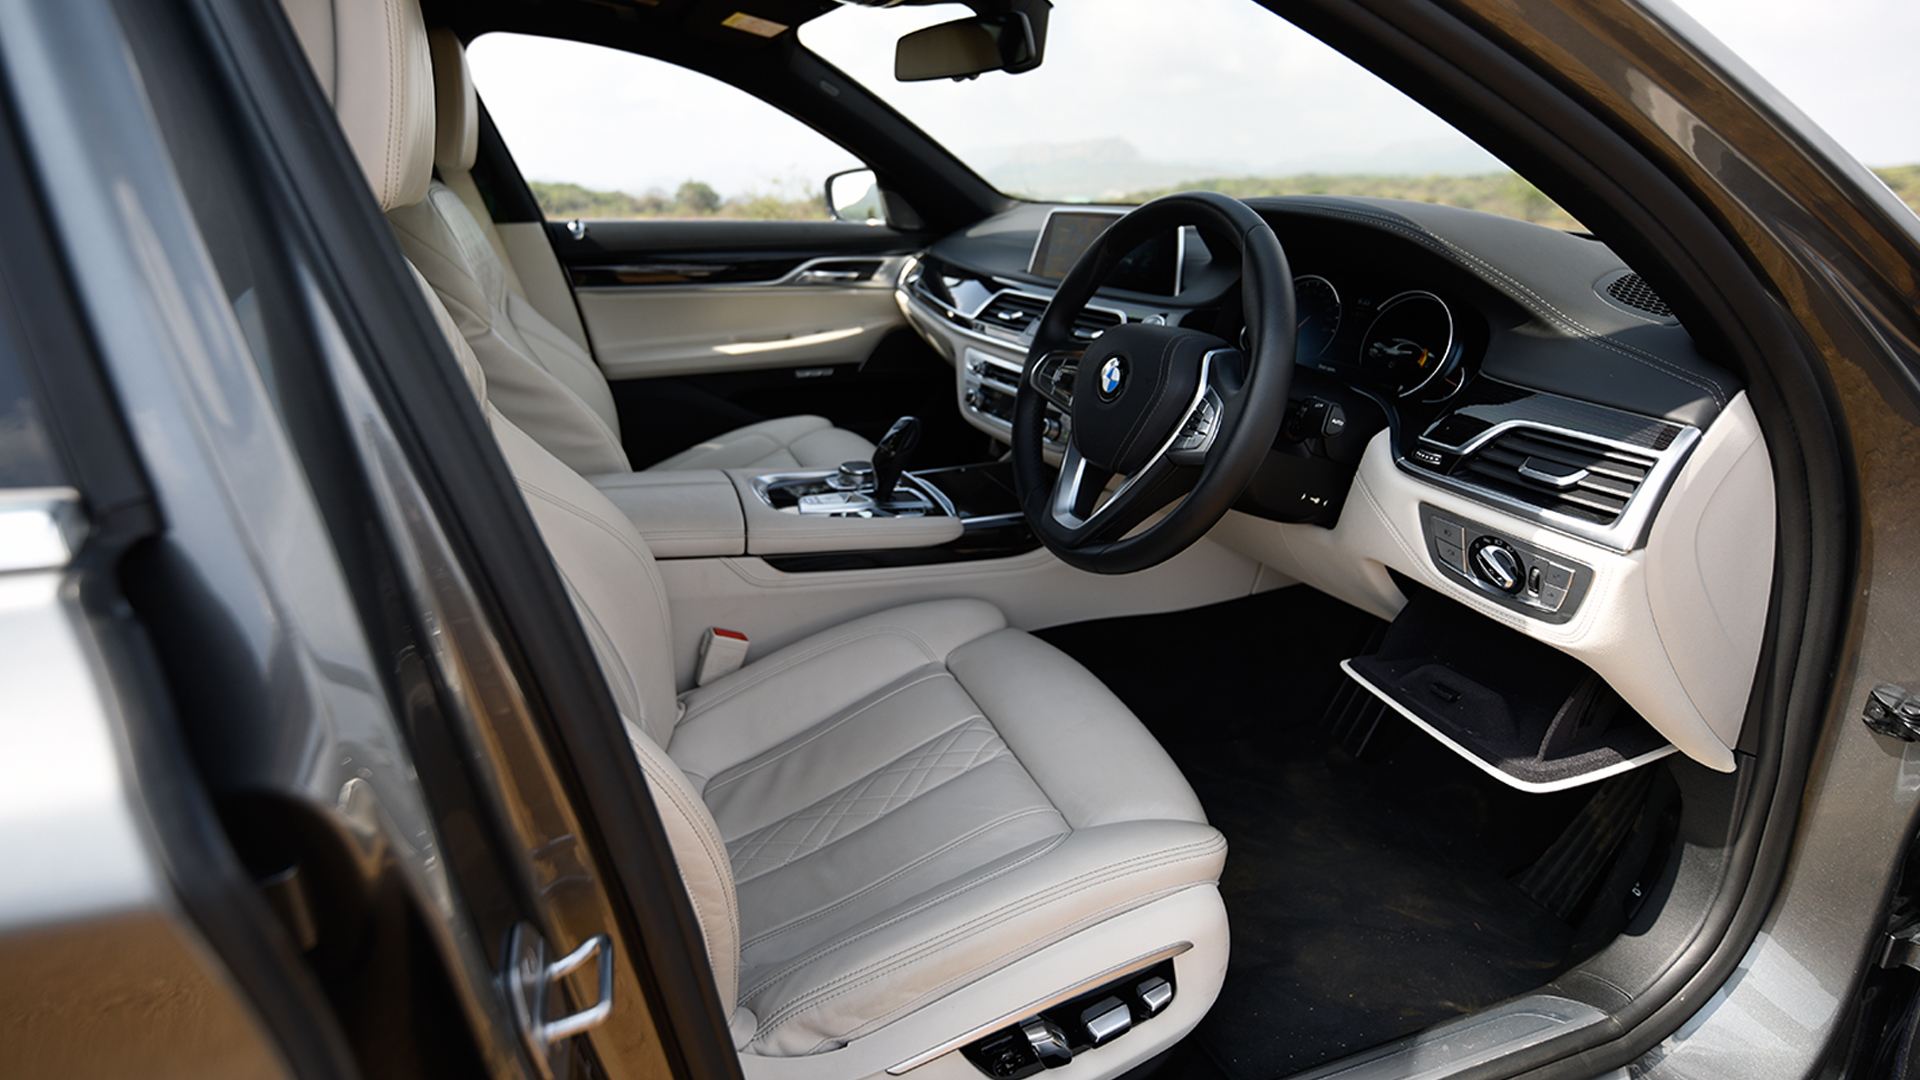 BMW 7 series 2016 730Ld M Sport Interior Car s Overdrive